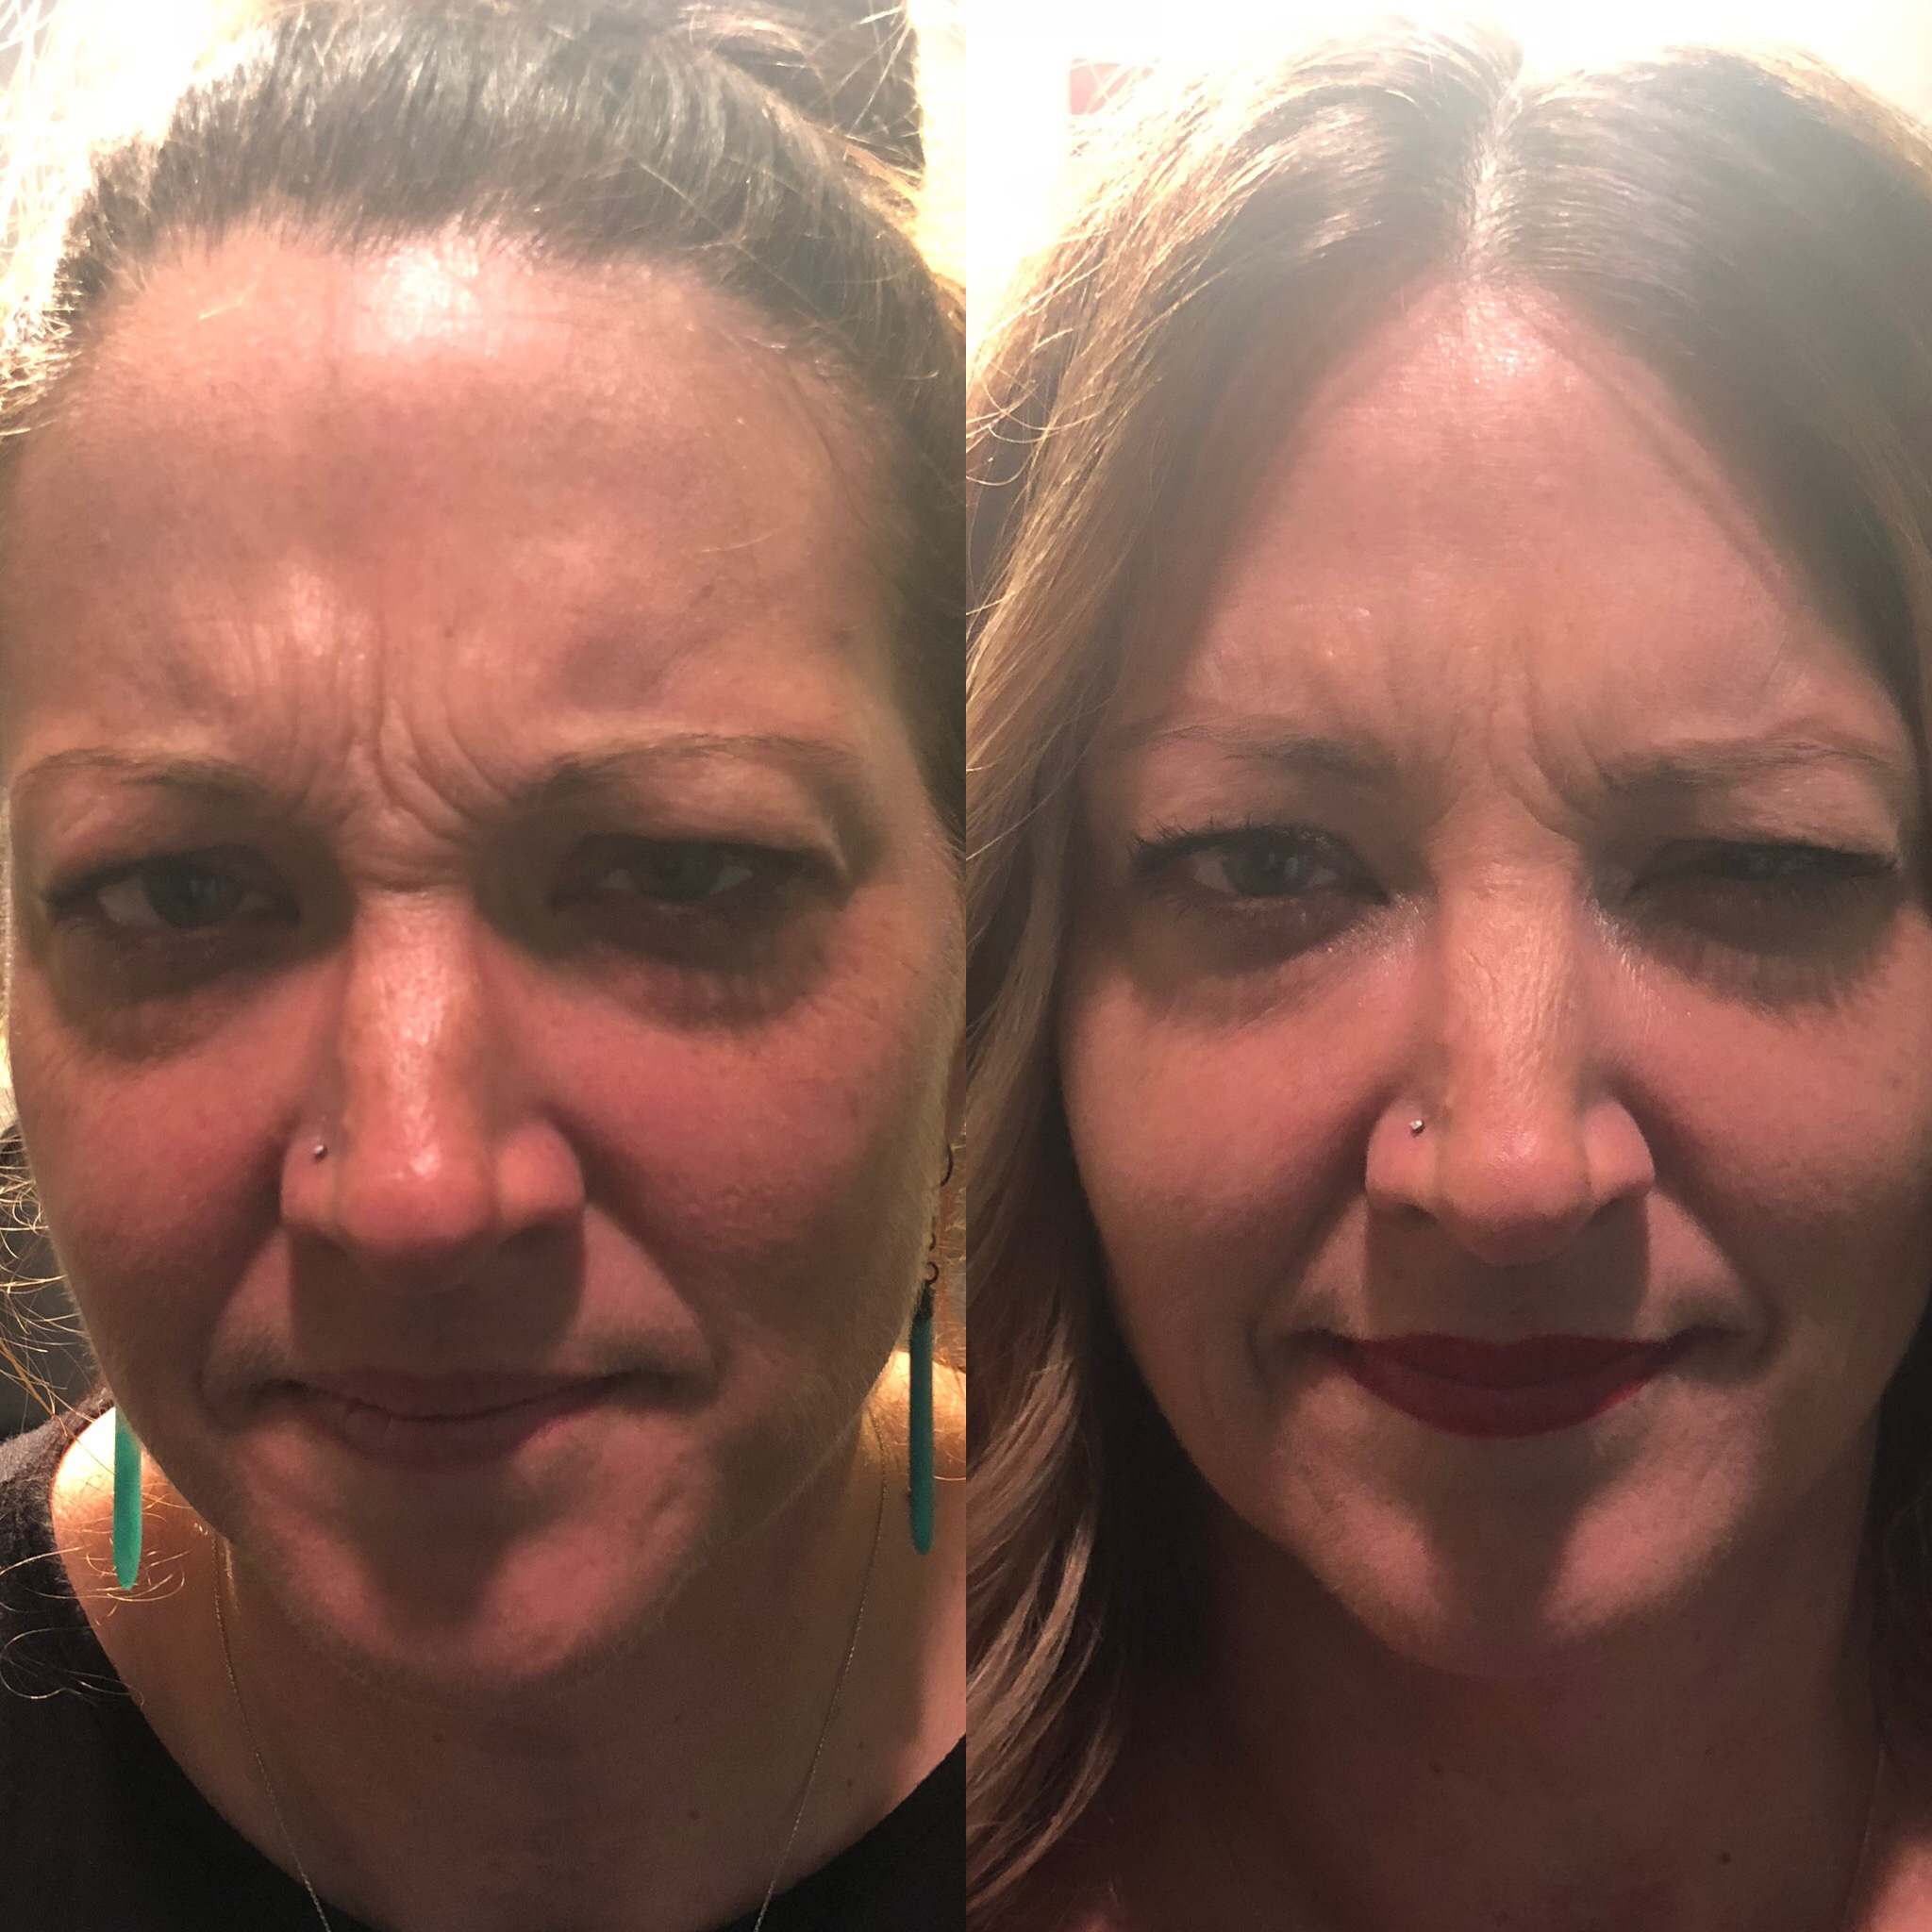 Frown Line (Glabella) treatment after one week with Dysport